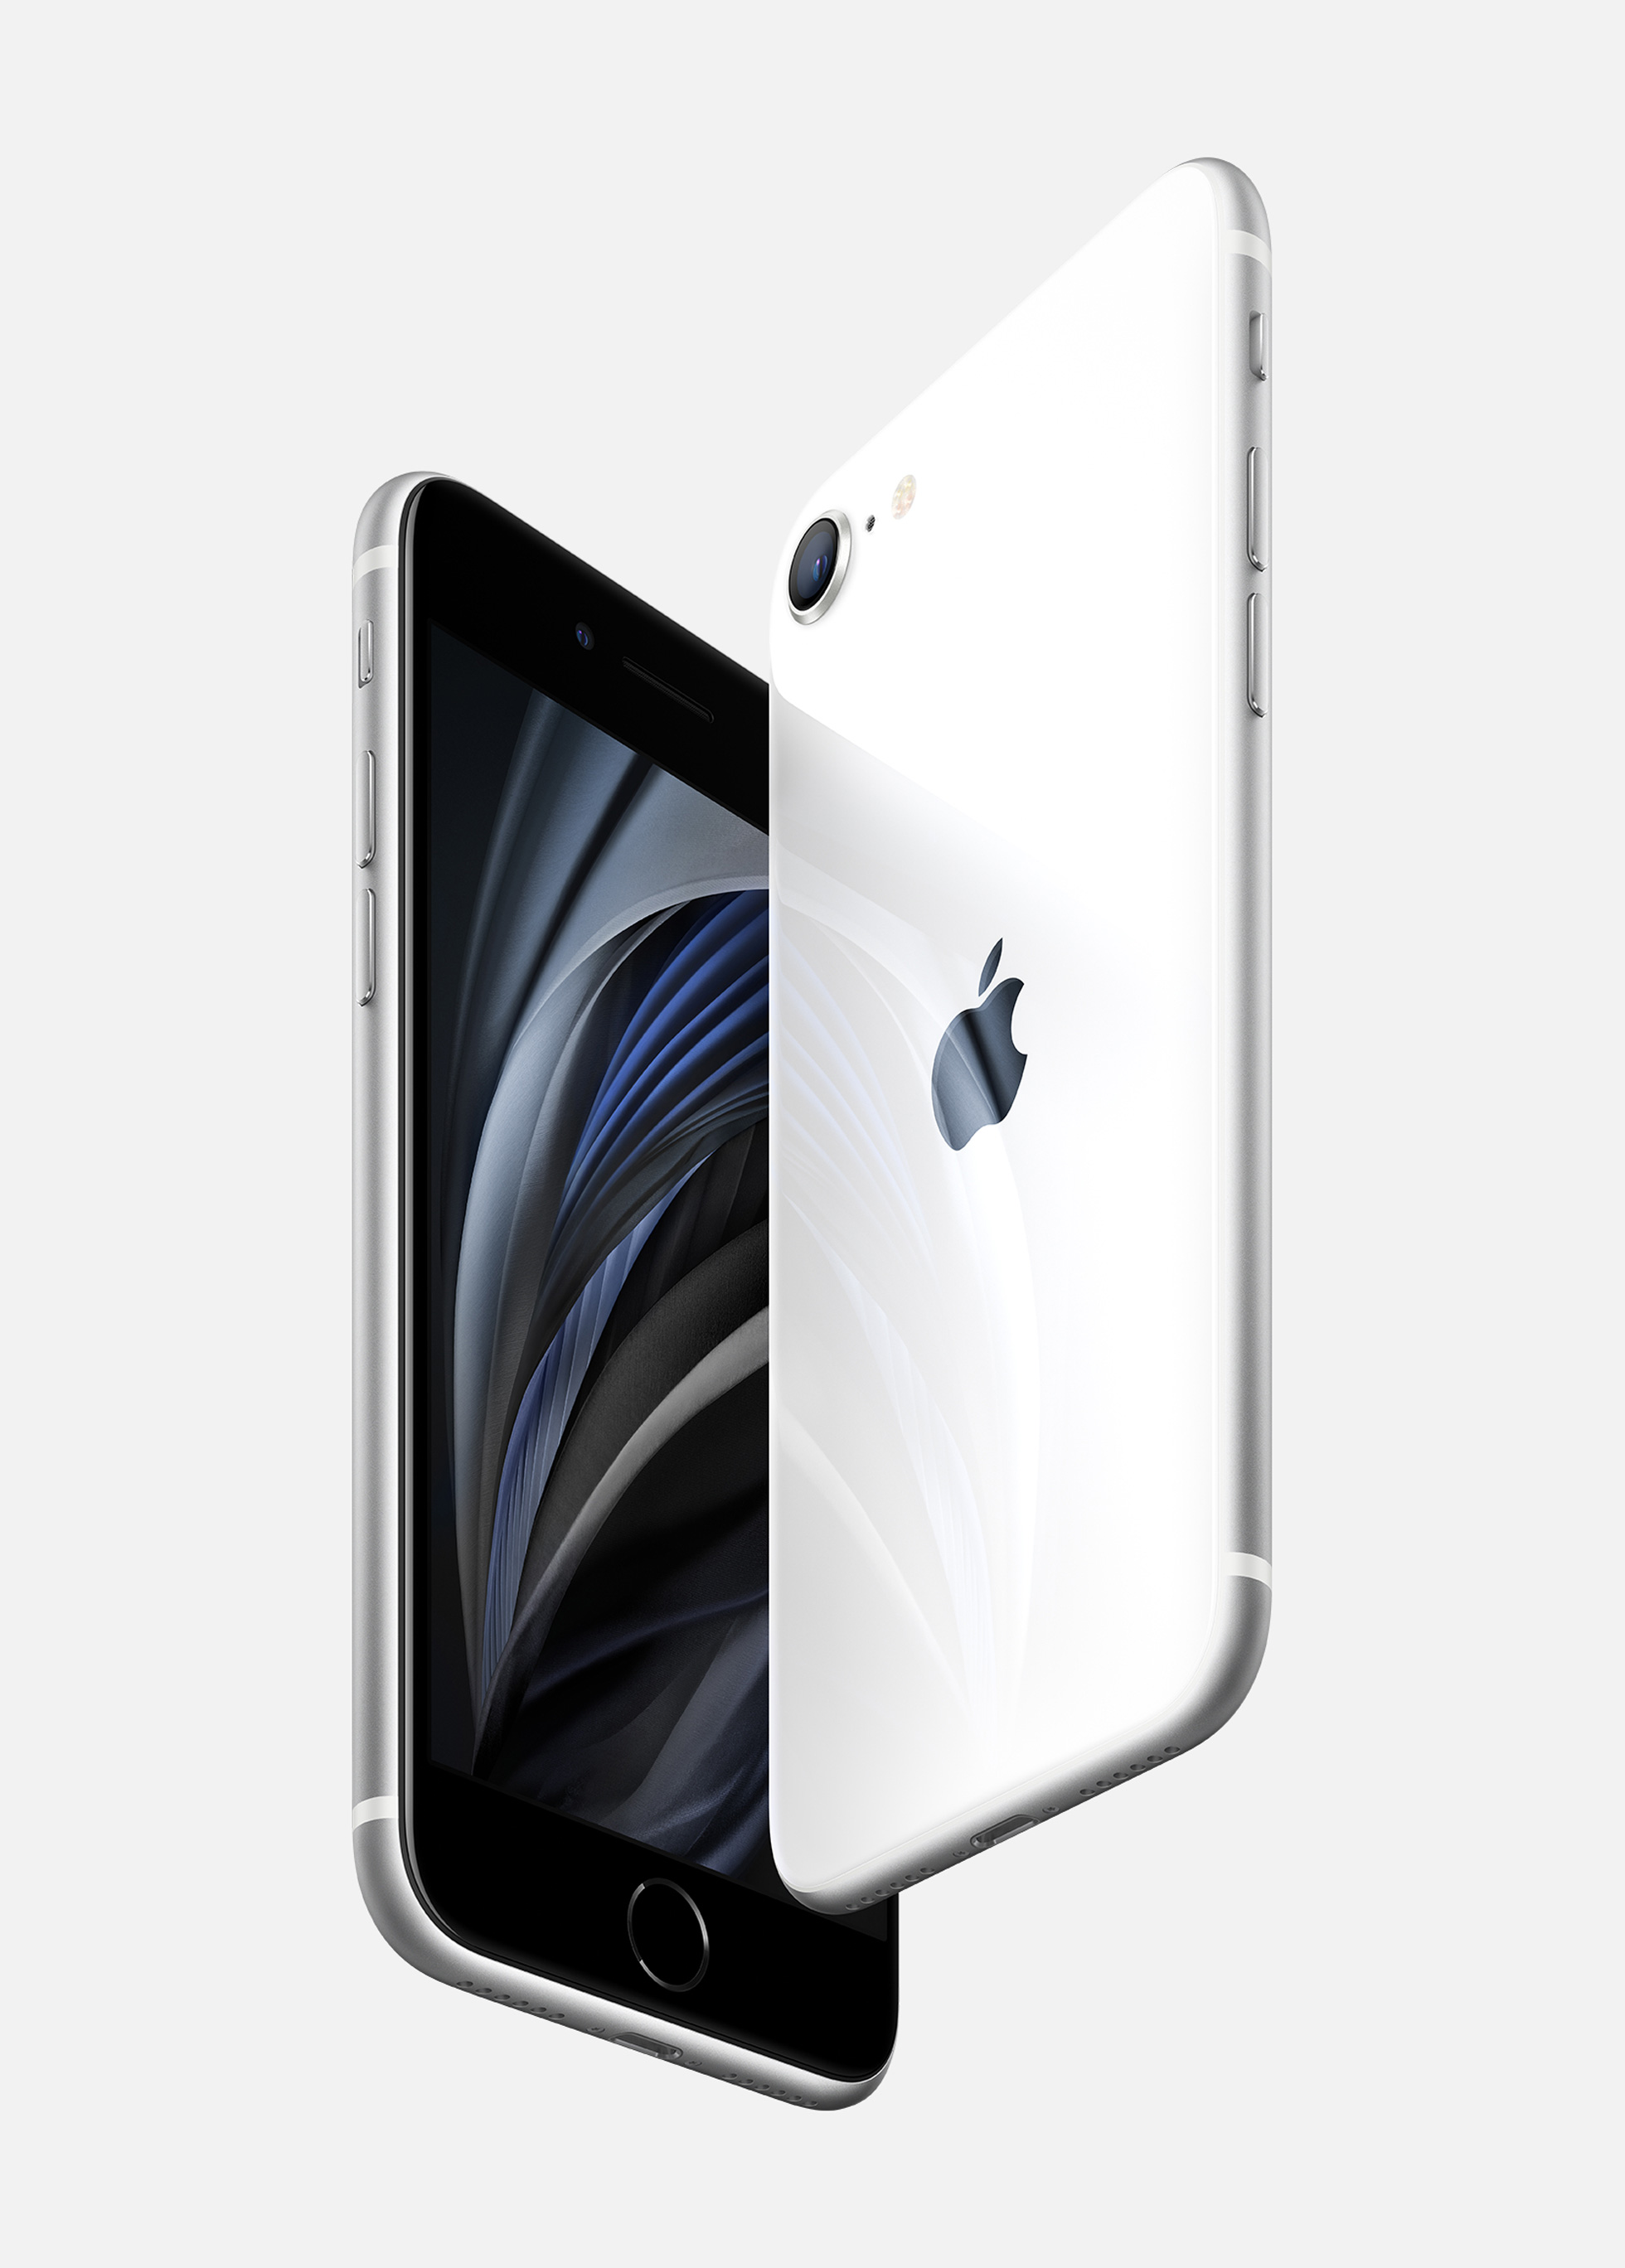 It looks like the iPhone 8, but more powerful.